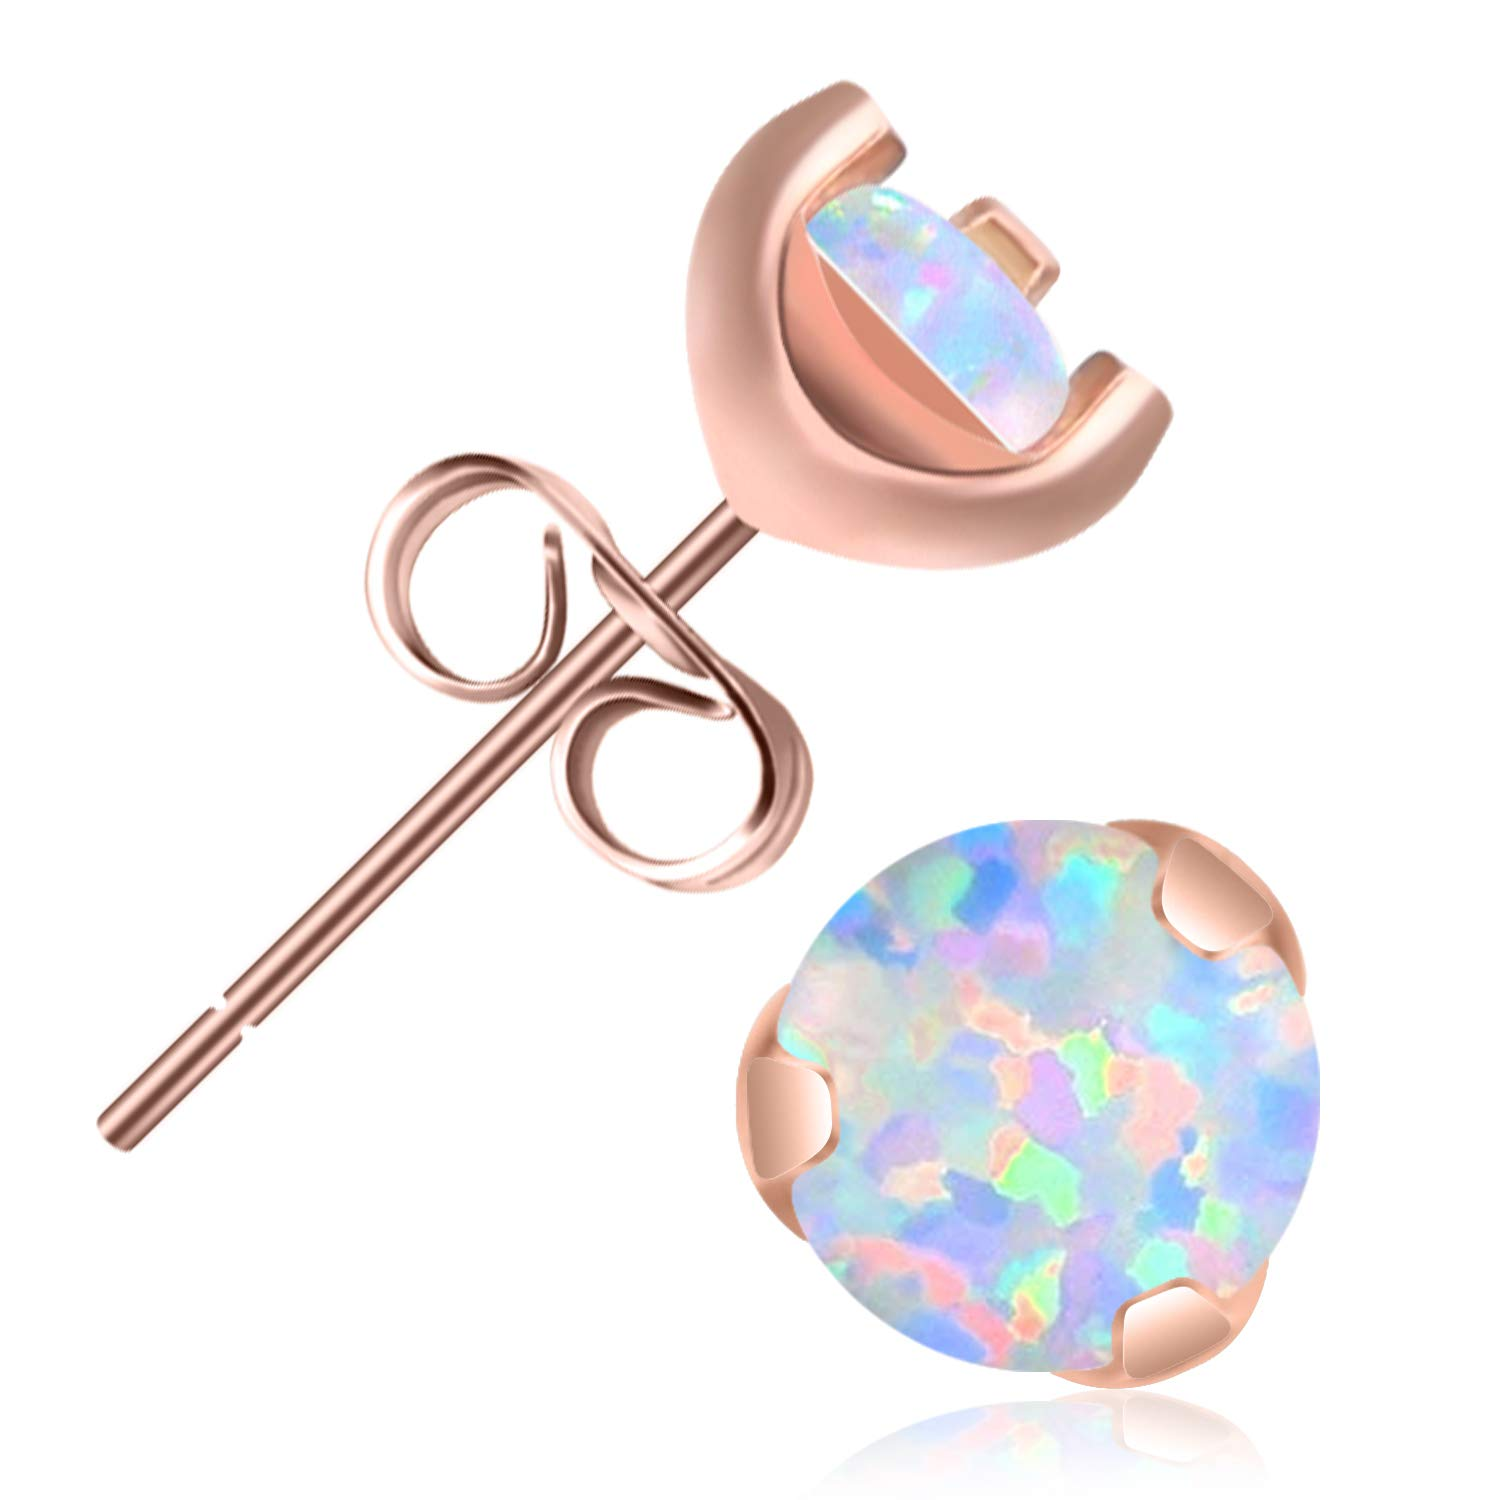 UHIBROS Stud Earring, 316L Stainless Steel 24K Rose Gold Hypoallergenic Studs Opal Round Ball Earrings FASH0196